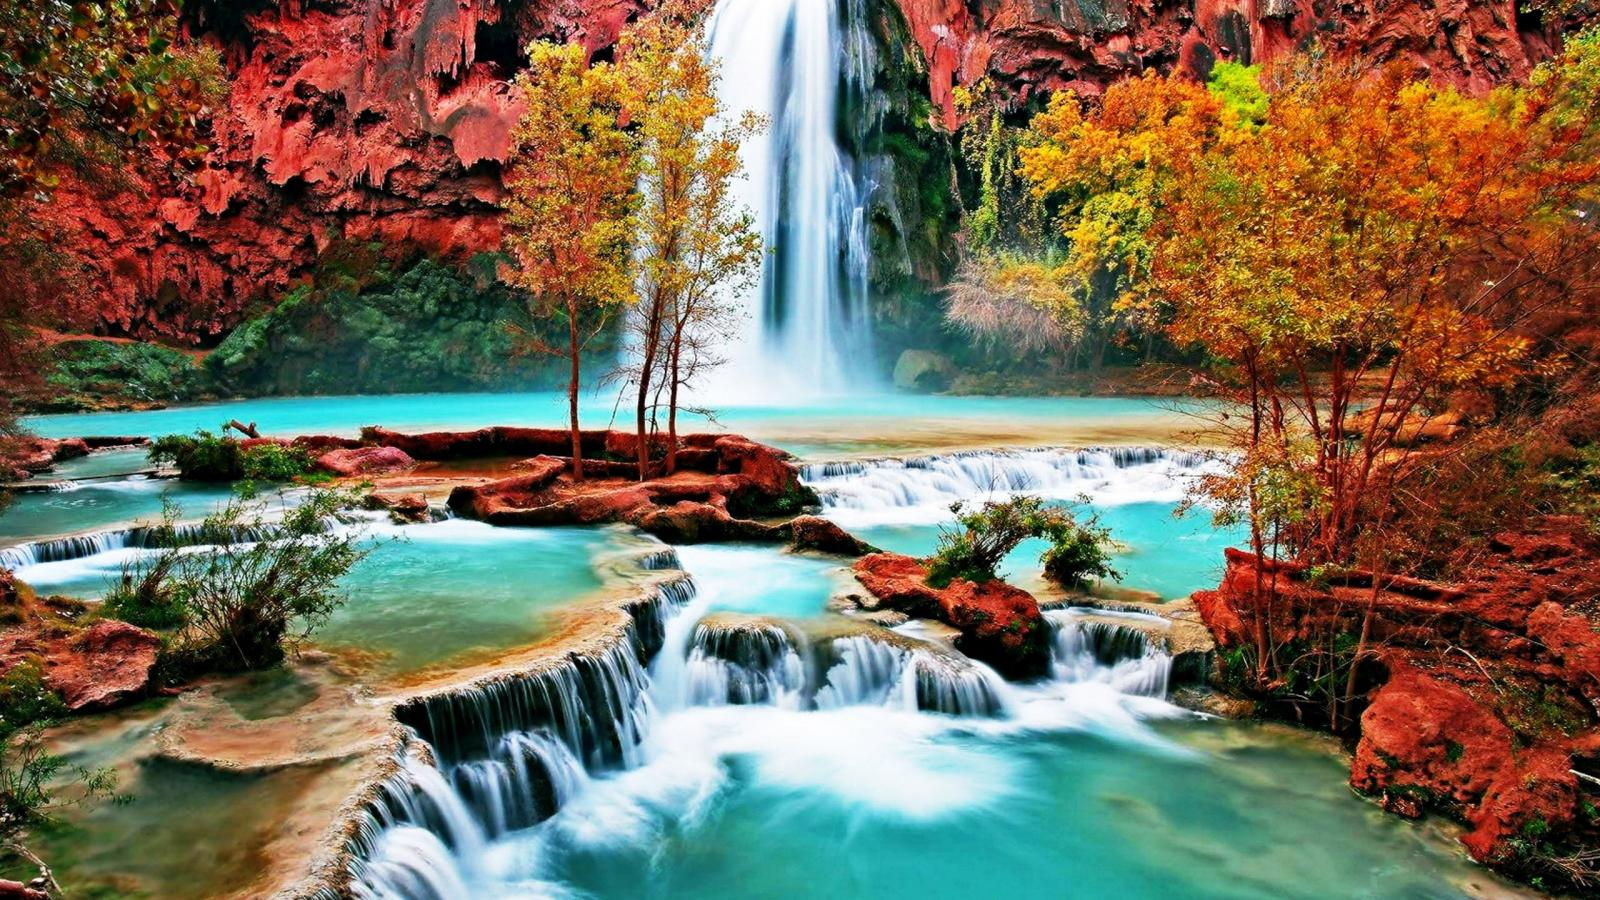 Bing Hd Wallpaper Fall Beautiful Nature Wallpaper With Waterfall In Autumn Forest